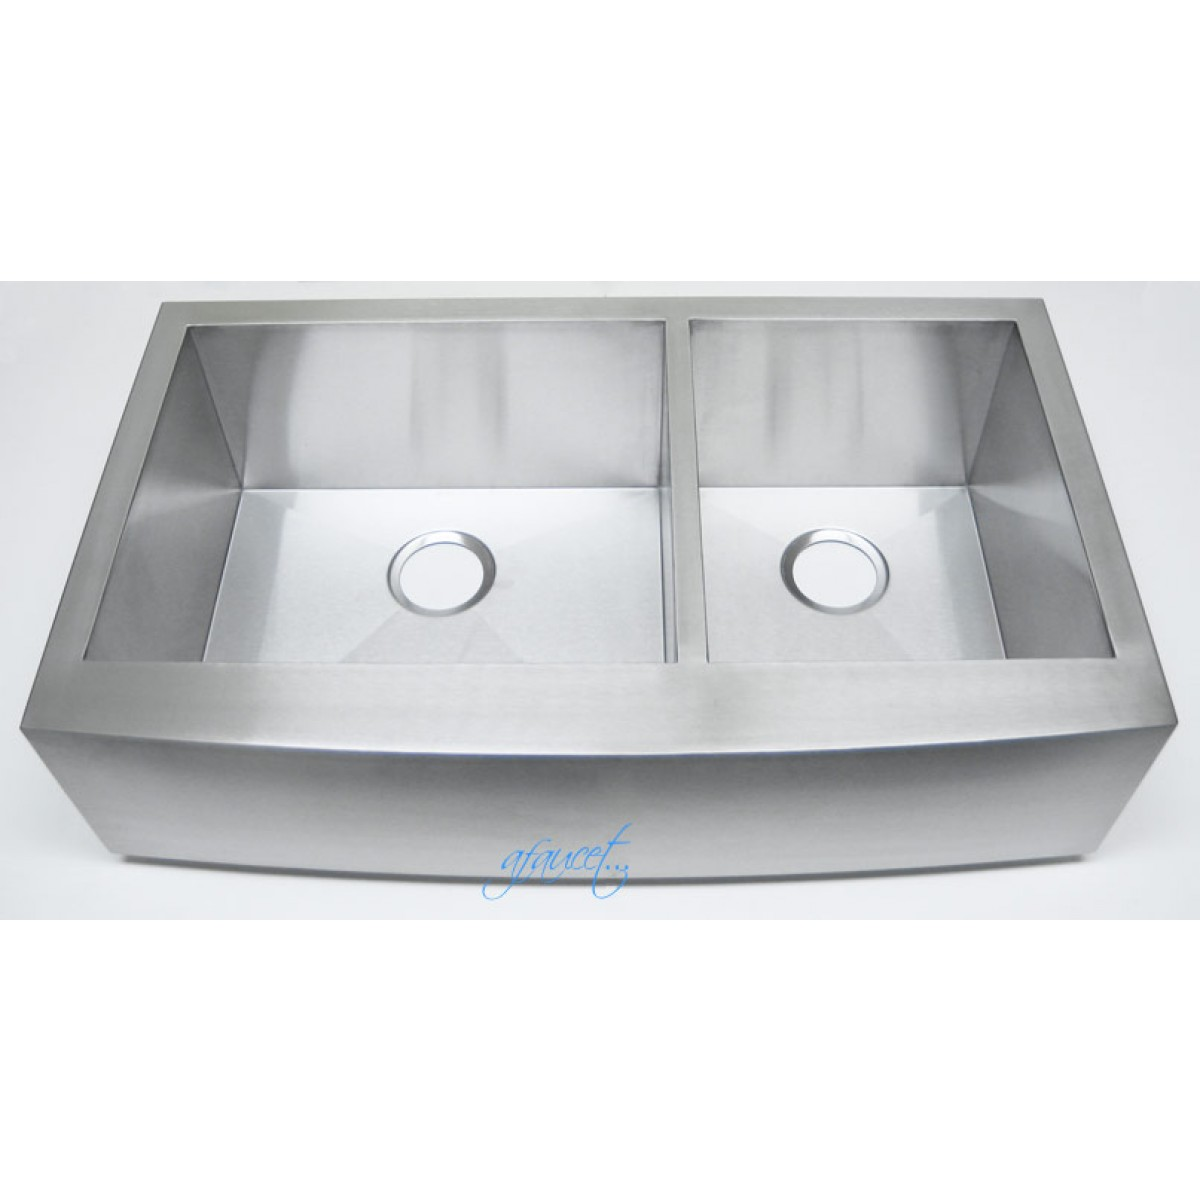 36 Inch Stainless Steel Curved Front Farm A 60 40 Double Bowl Kitchen Sink